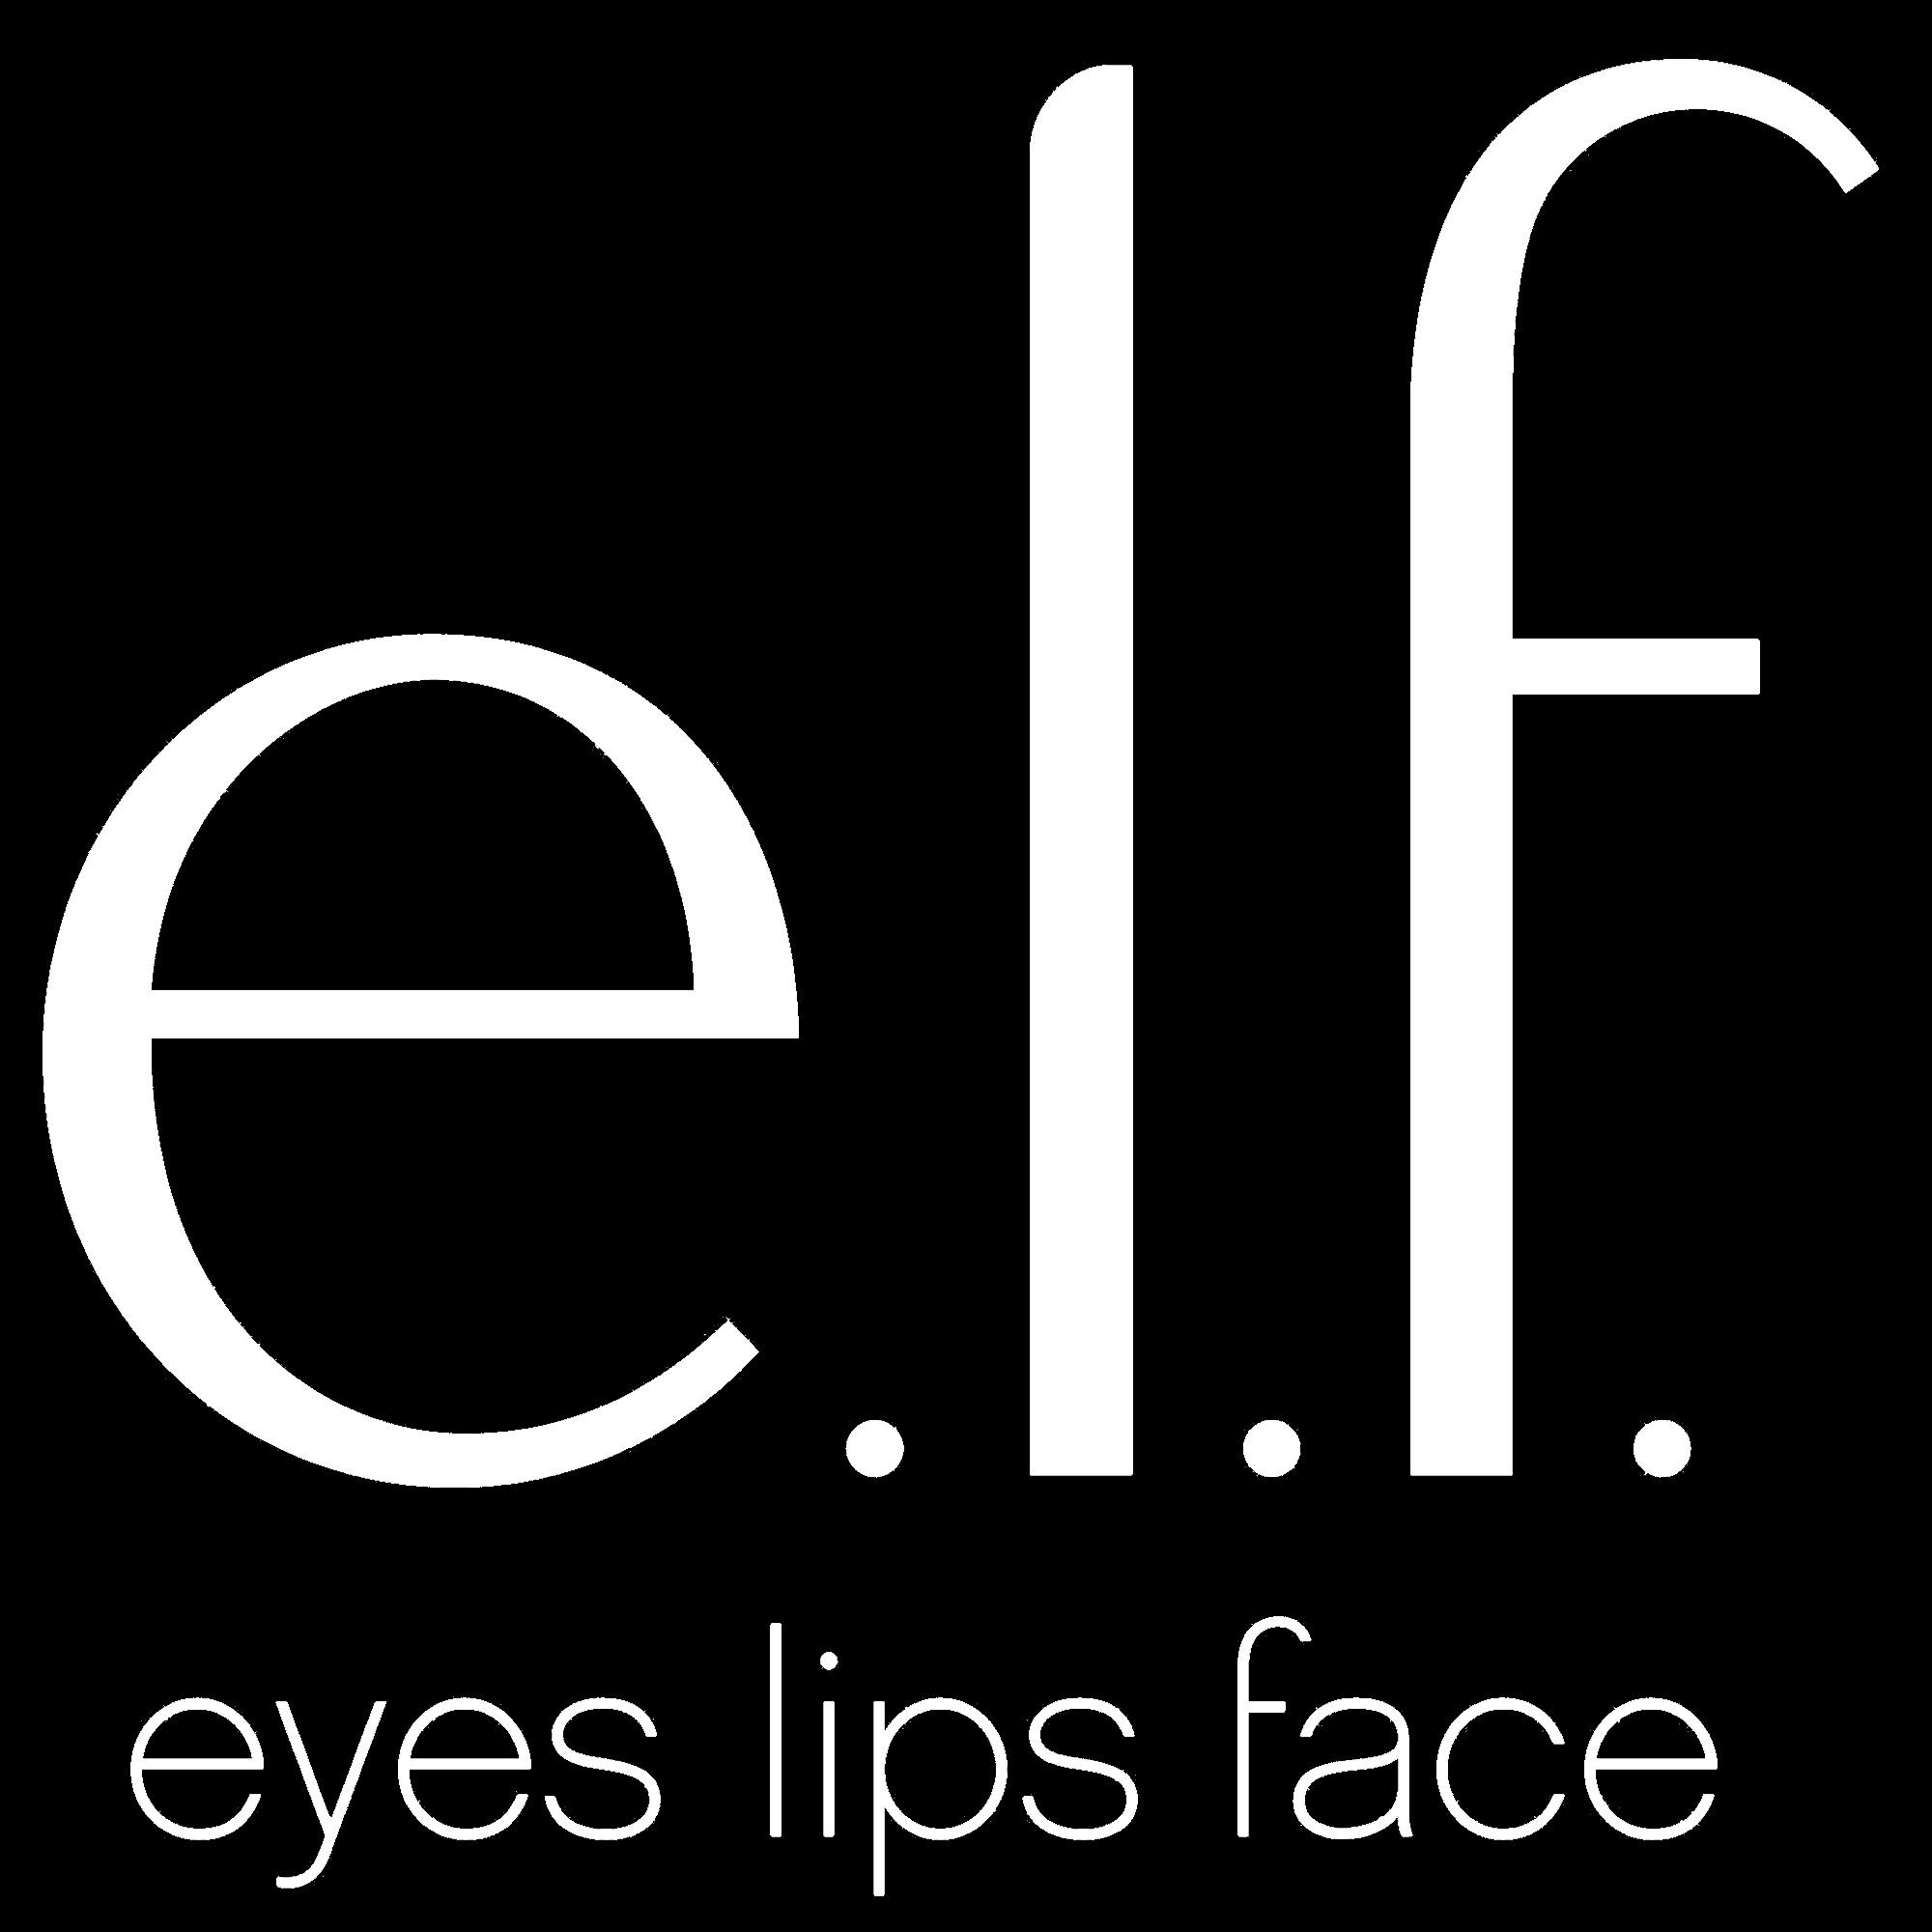 Join e.l.f.'s BeautySquad loyalty program and get Free Shipping on your first order PLUS 50 bonus points!